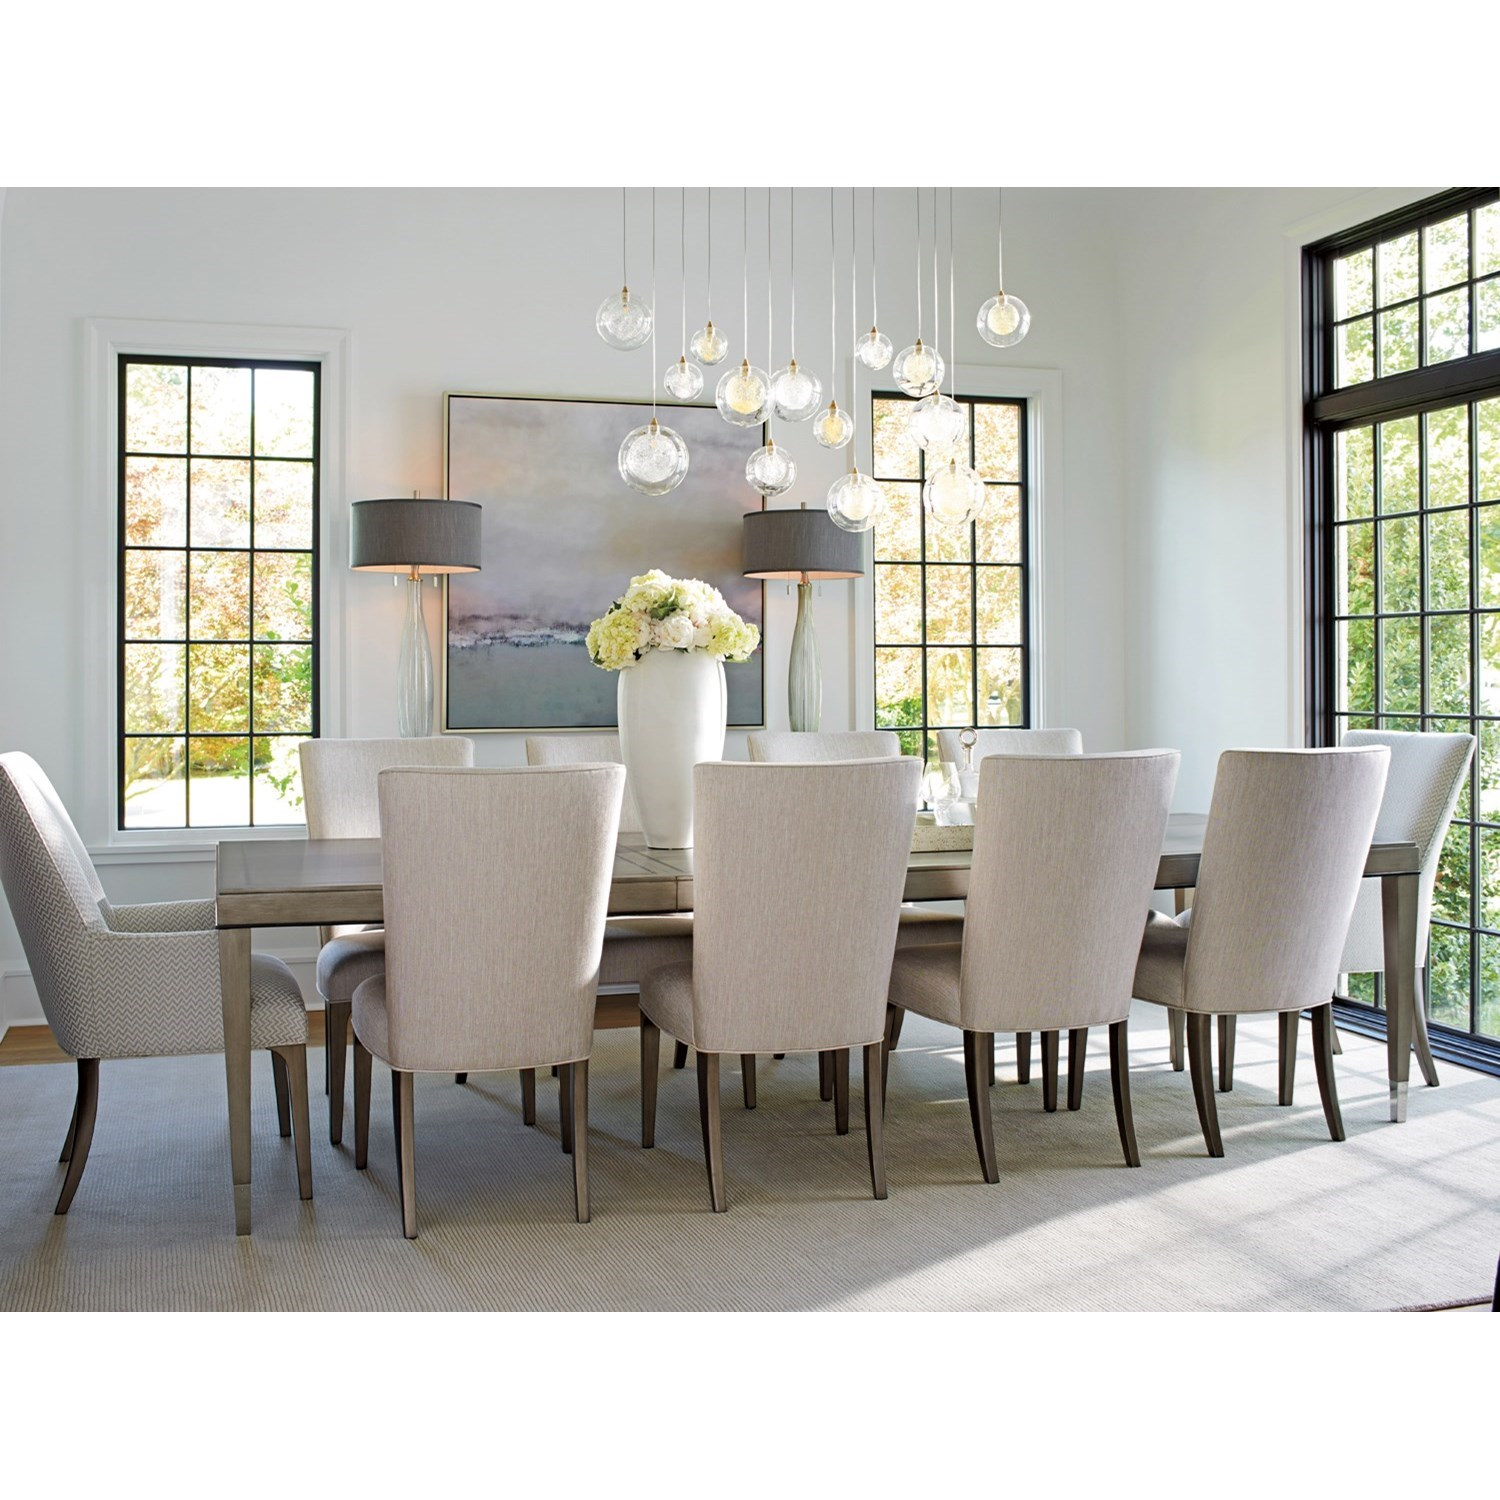 Ariana 11 Pc Dining Set by Lexington at Fisher Home Furnishings